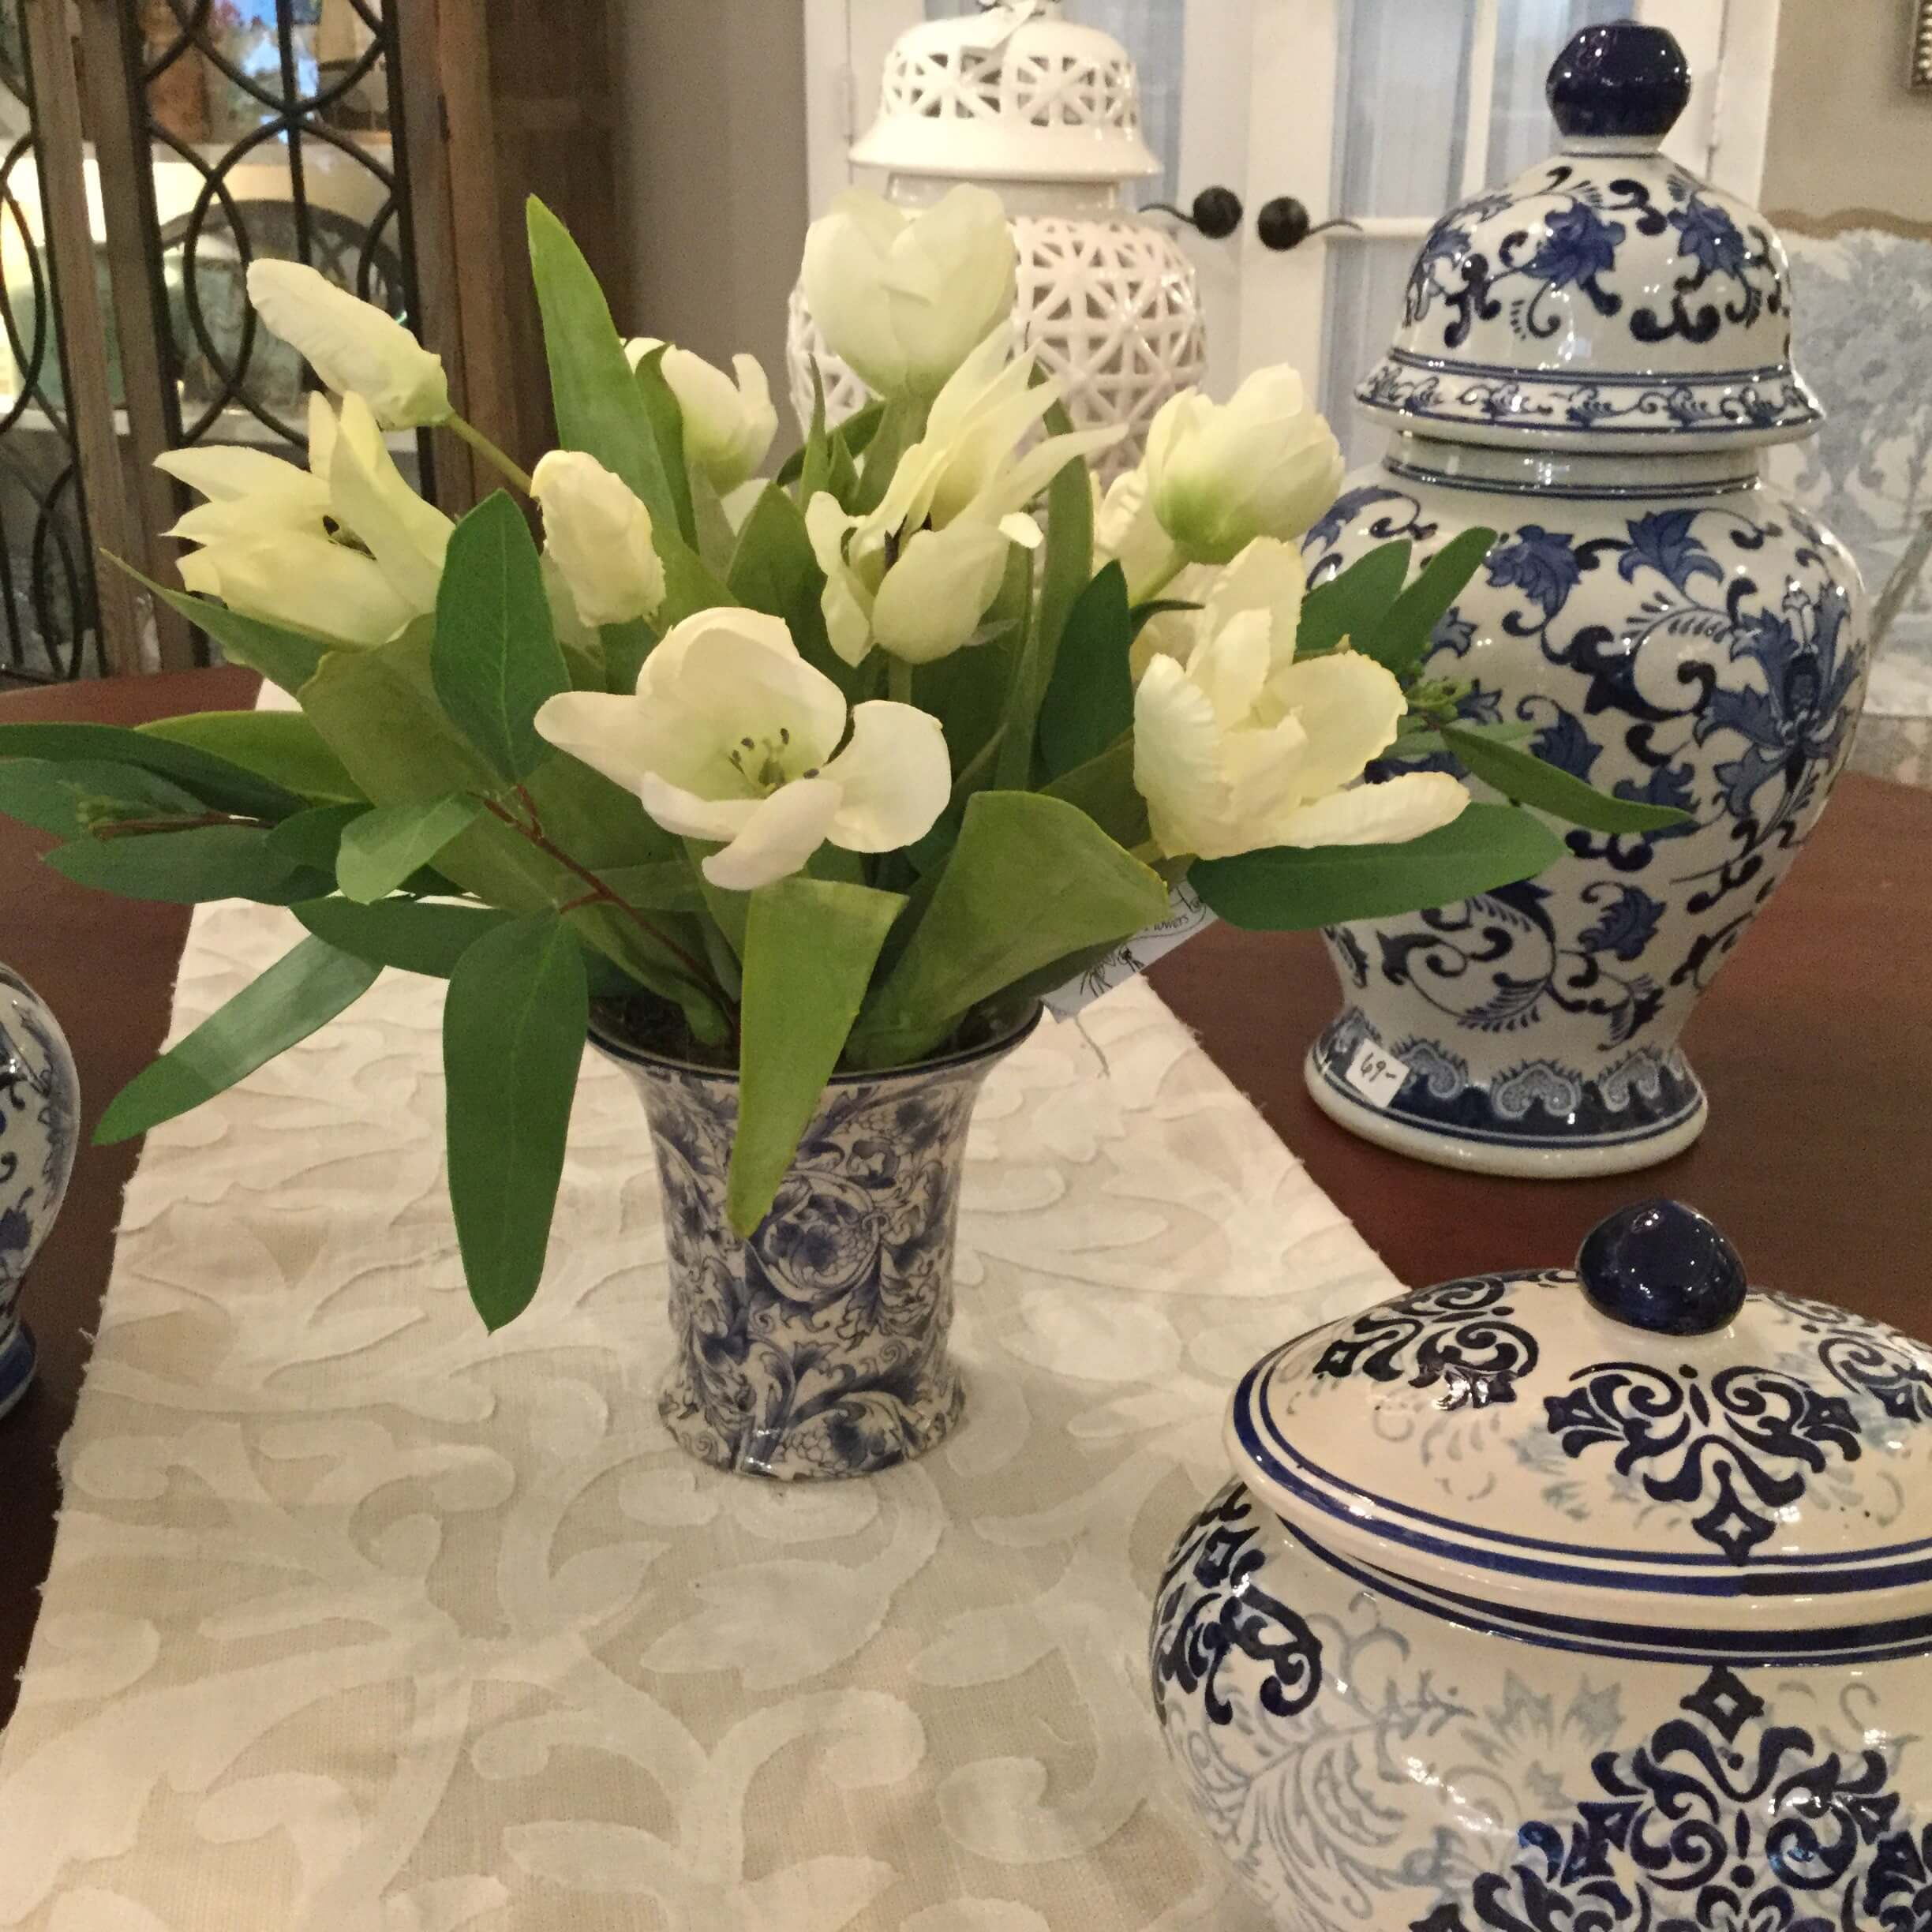 White Tulips in Blue \u0026 White Ceramic Vase & White Tulips in Blue \u0026 White Ceramic Vase - P.S. Flowers and Interiors